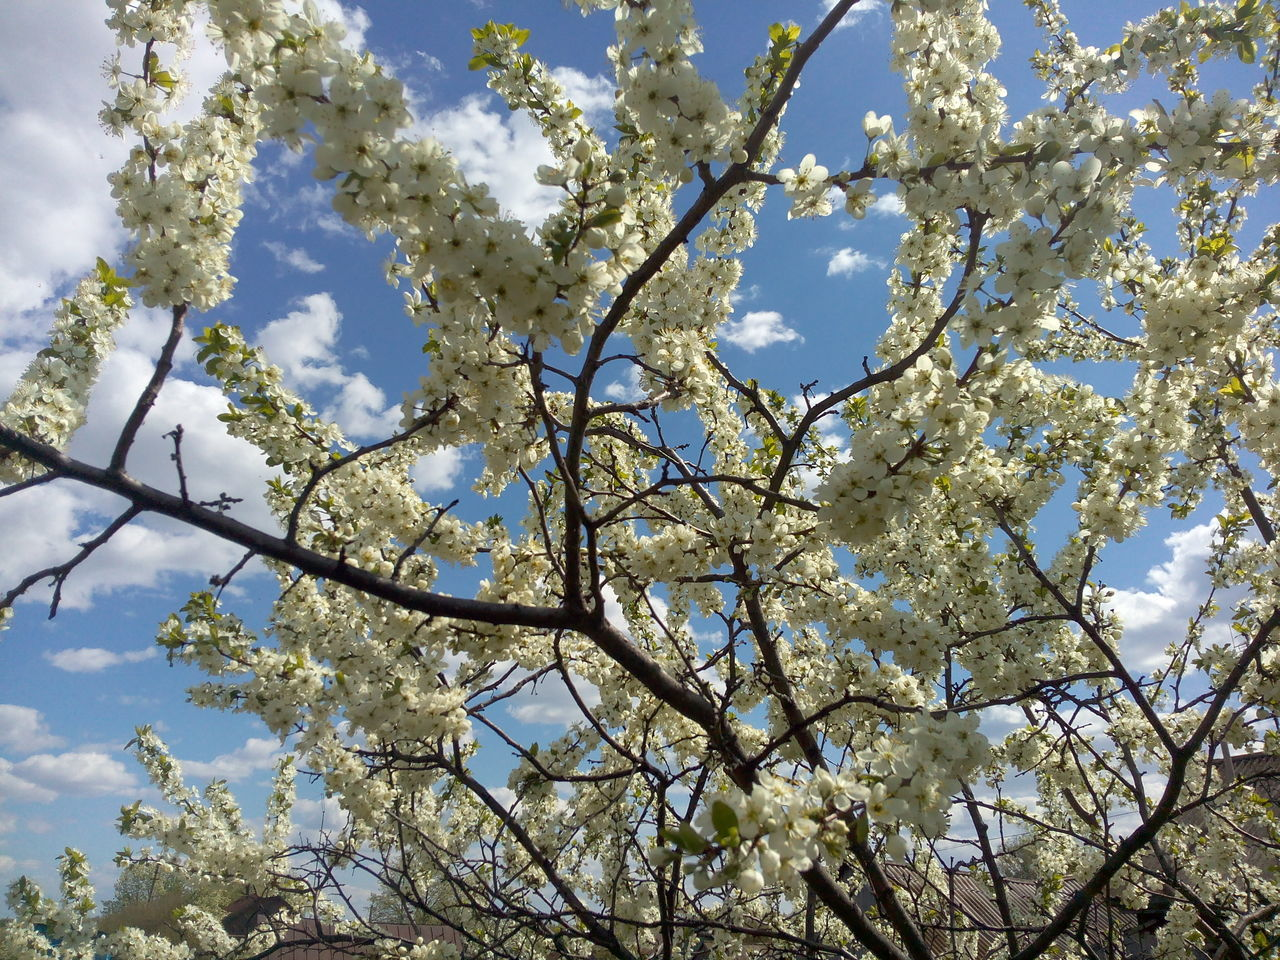 tree, branch, low angle view, nature, beauty in nature, flower, growth, day, no people, blossom, springtime, outdoors, sky, fragility, freshness, close-up, flower head